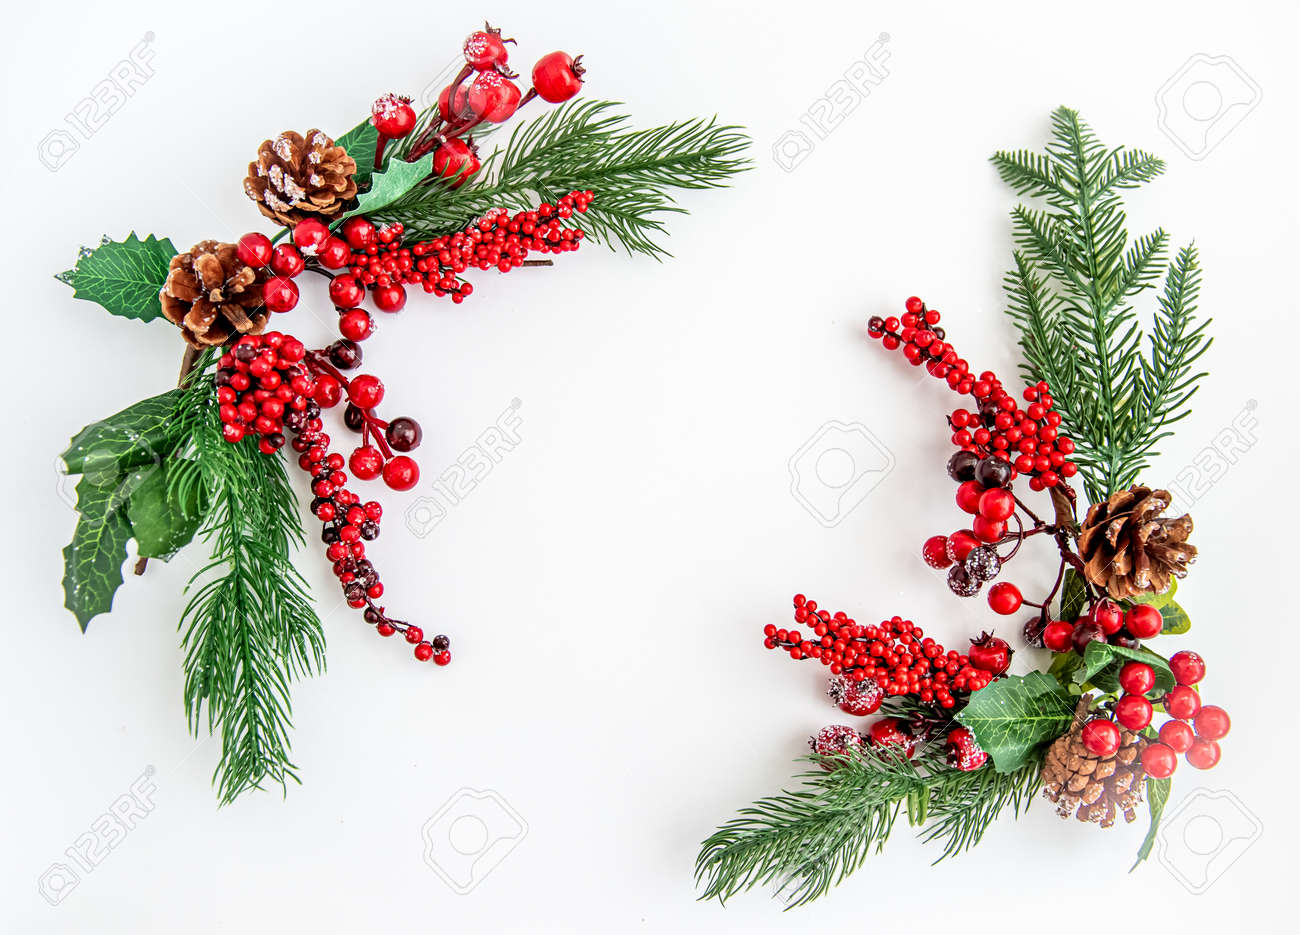 Green fir branches with red berries and Christmas decorations on a white background. Merry Christmas or Happy New Year concept. Flat lay, top view, copy space - 159765461